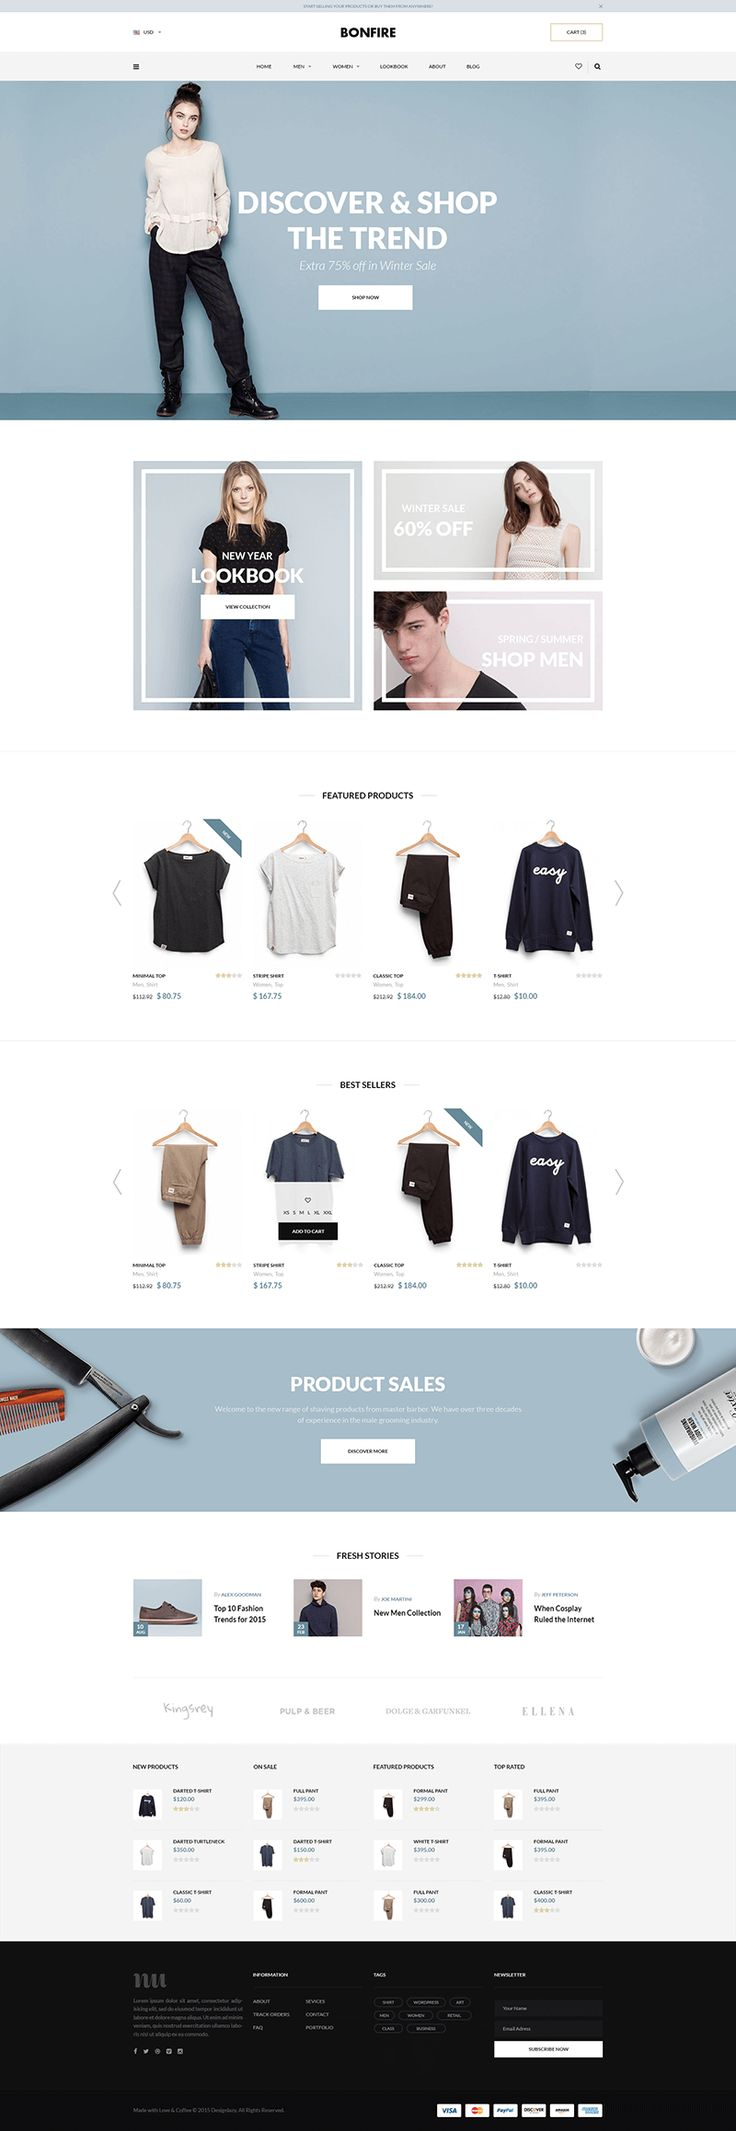 Ecommerce-Shop-Home (1)